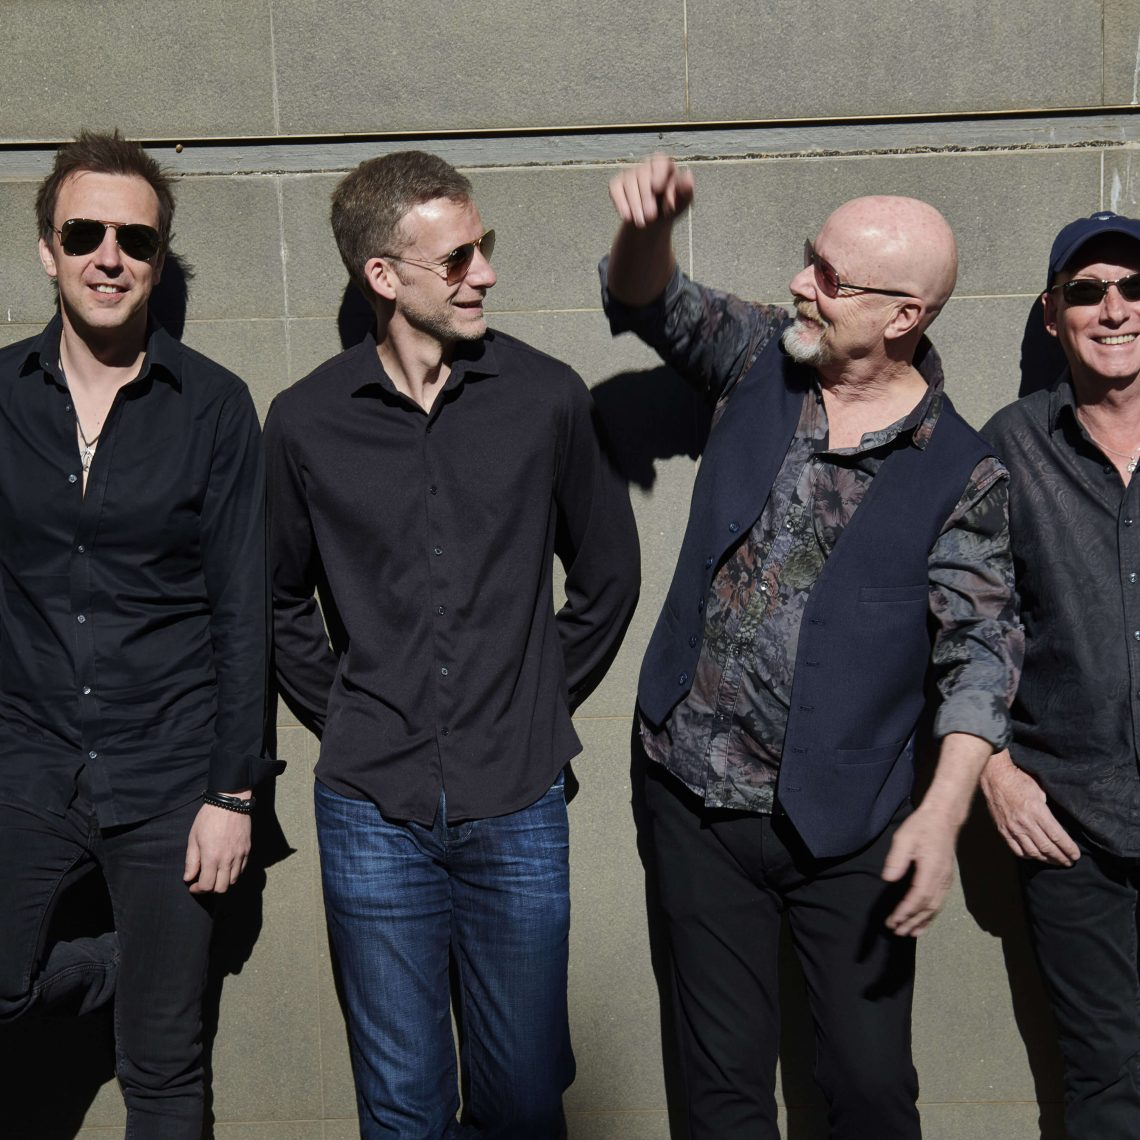 WISHBONE ASH releases their new album in February!